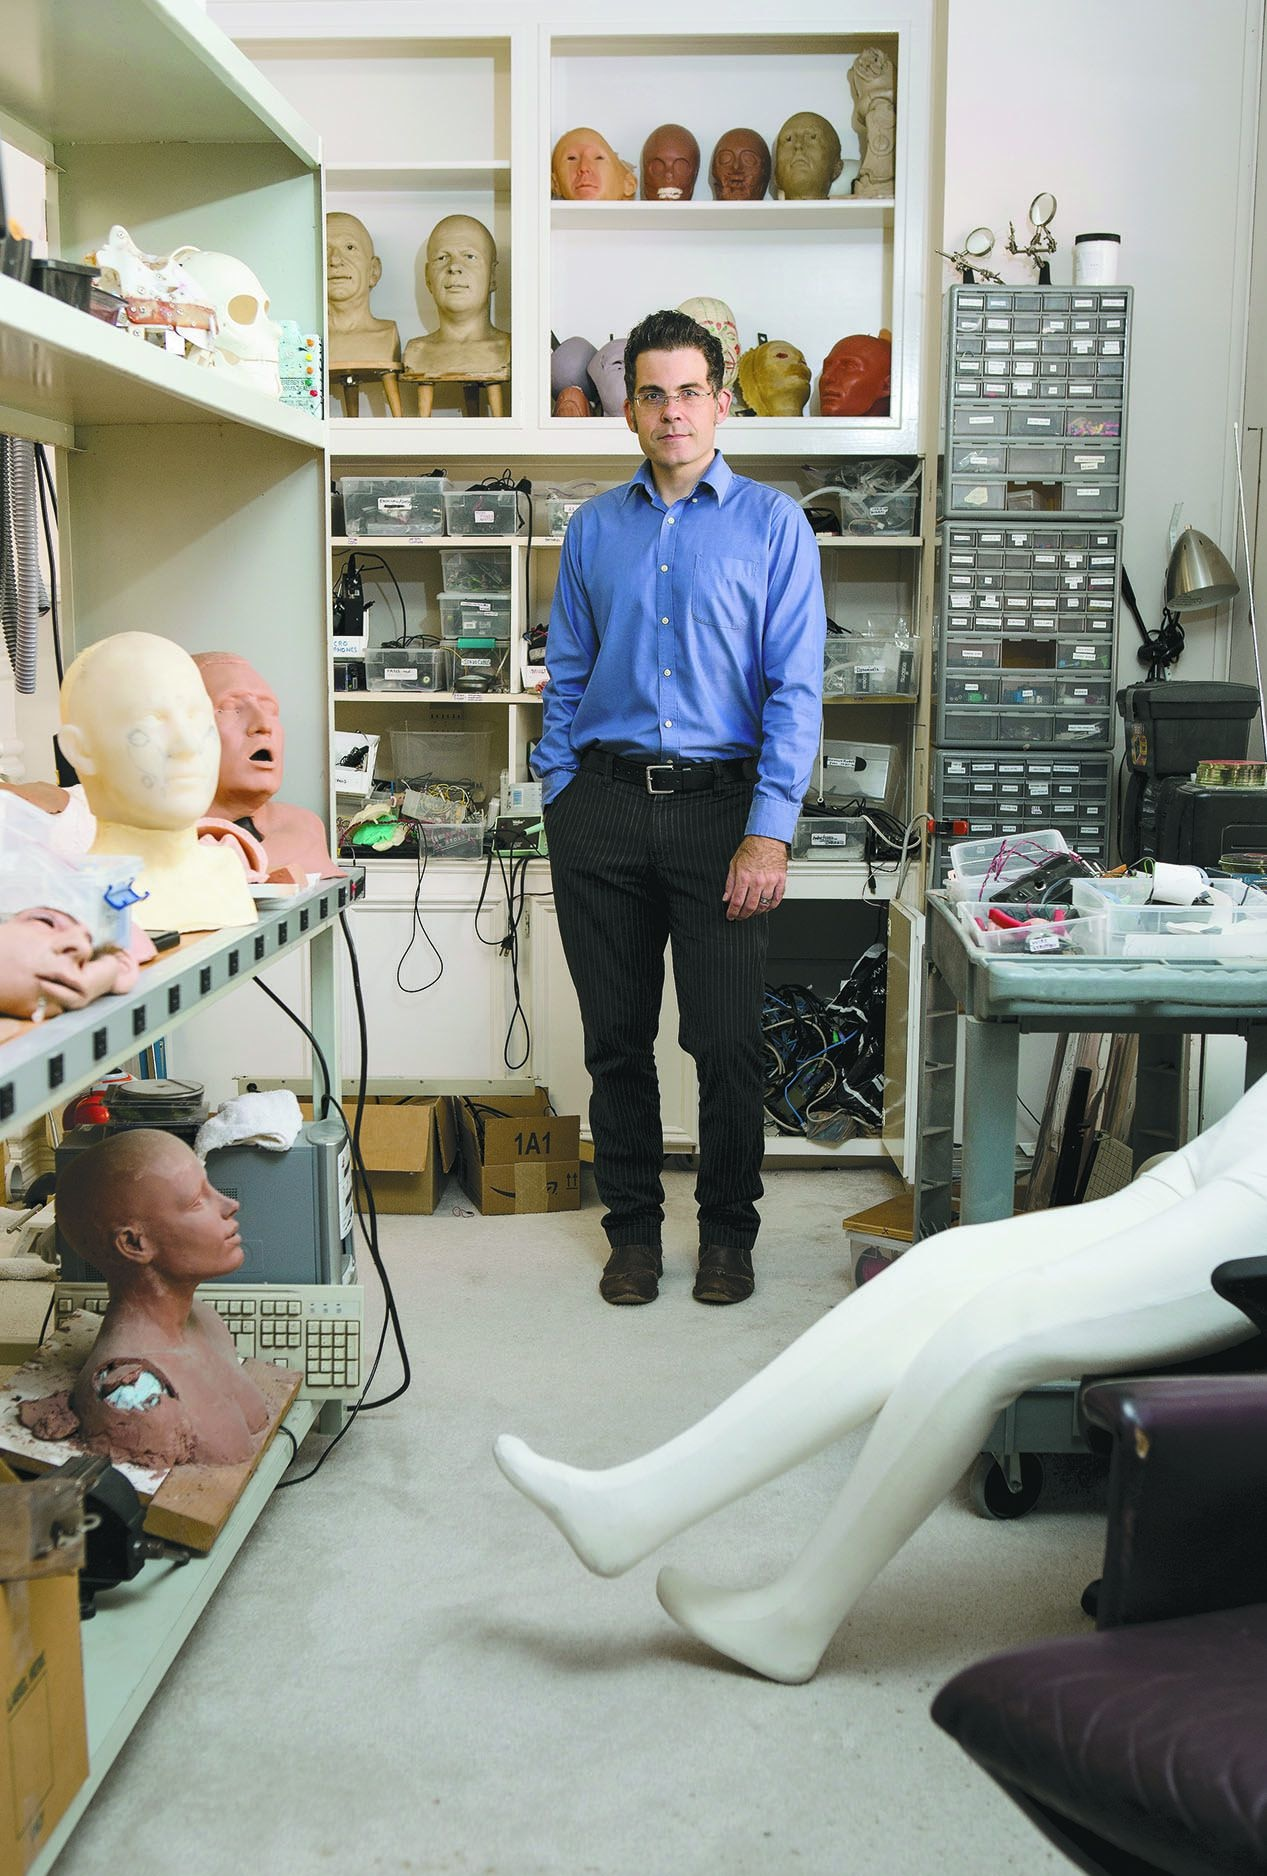 David Hanson shown in 2015 in his North Texas workspace.